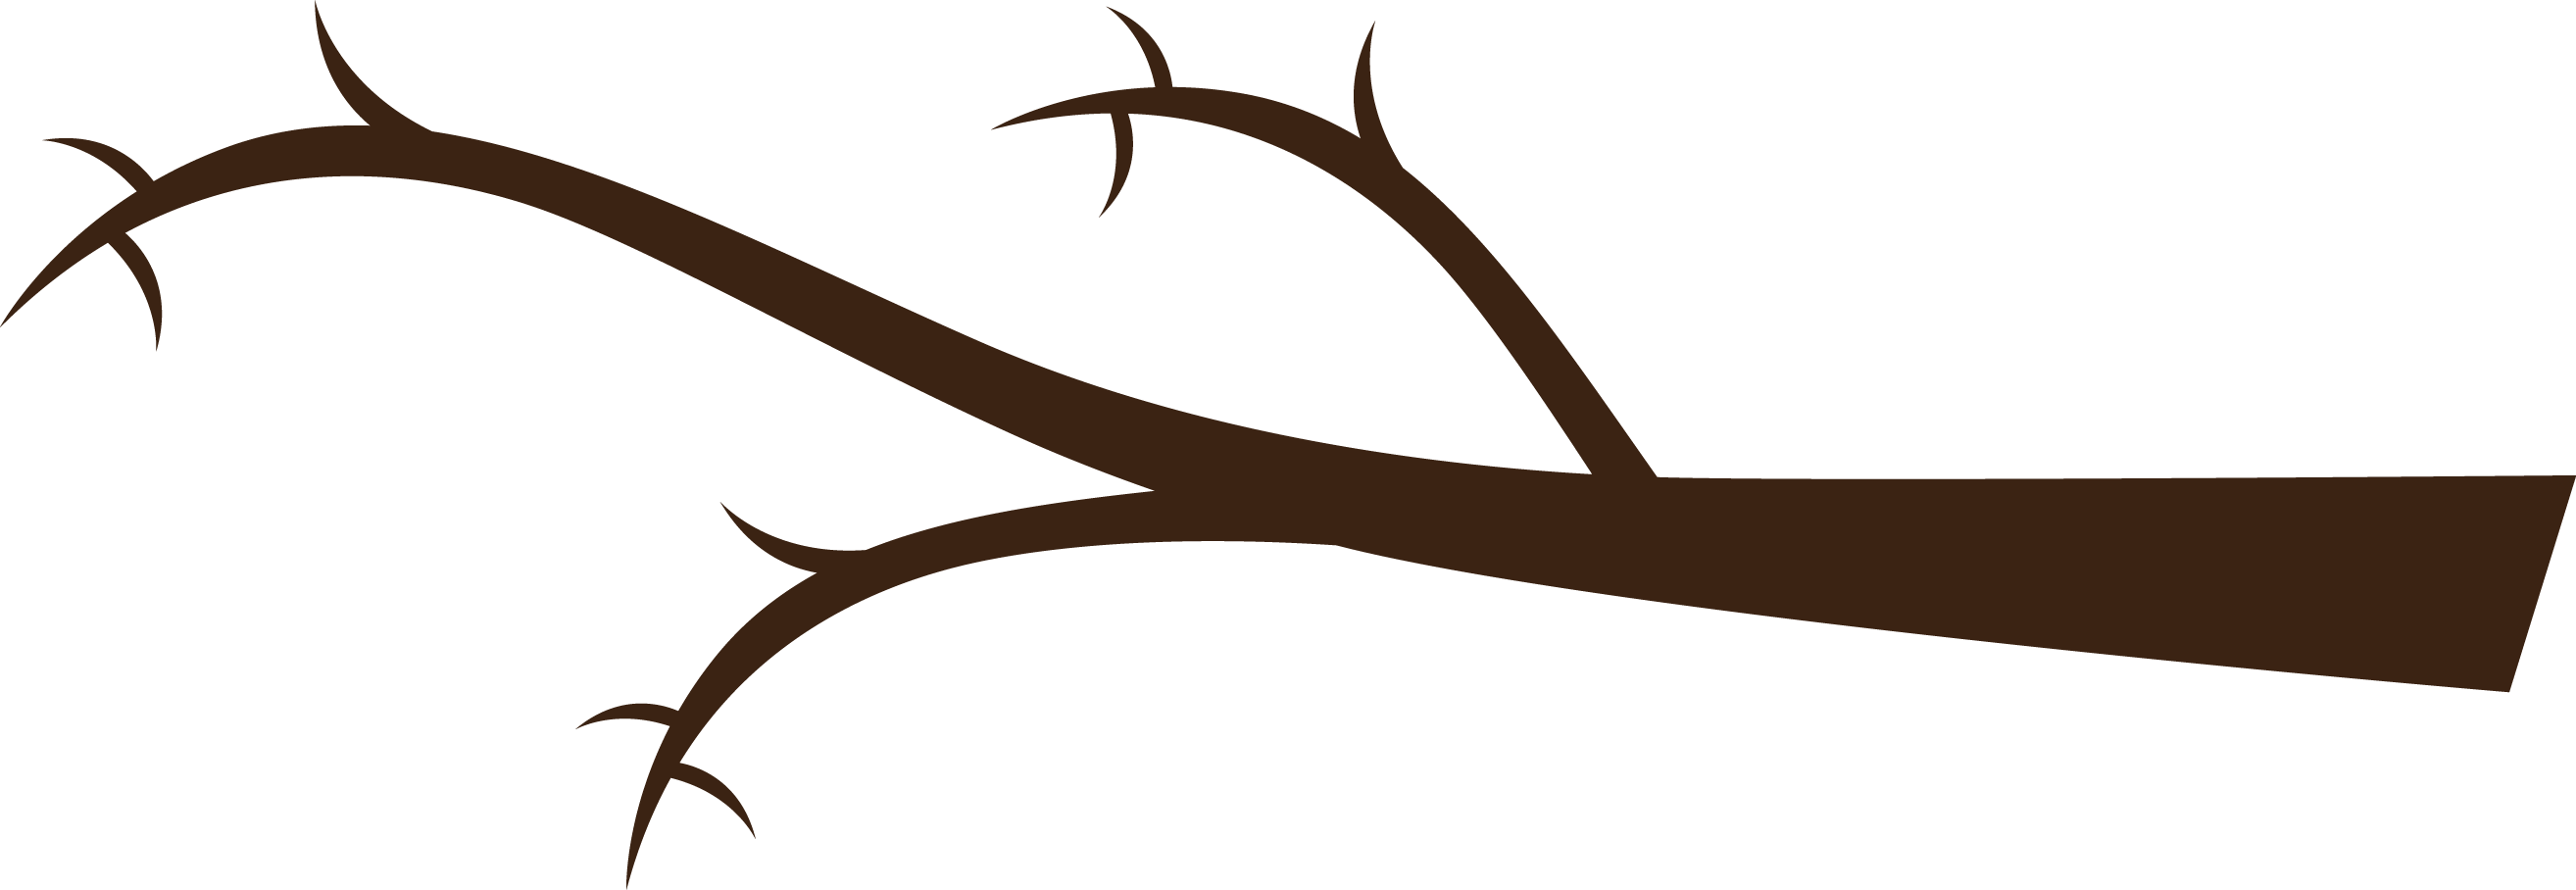 Branch clipart tree limb.  collection of png